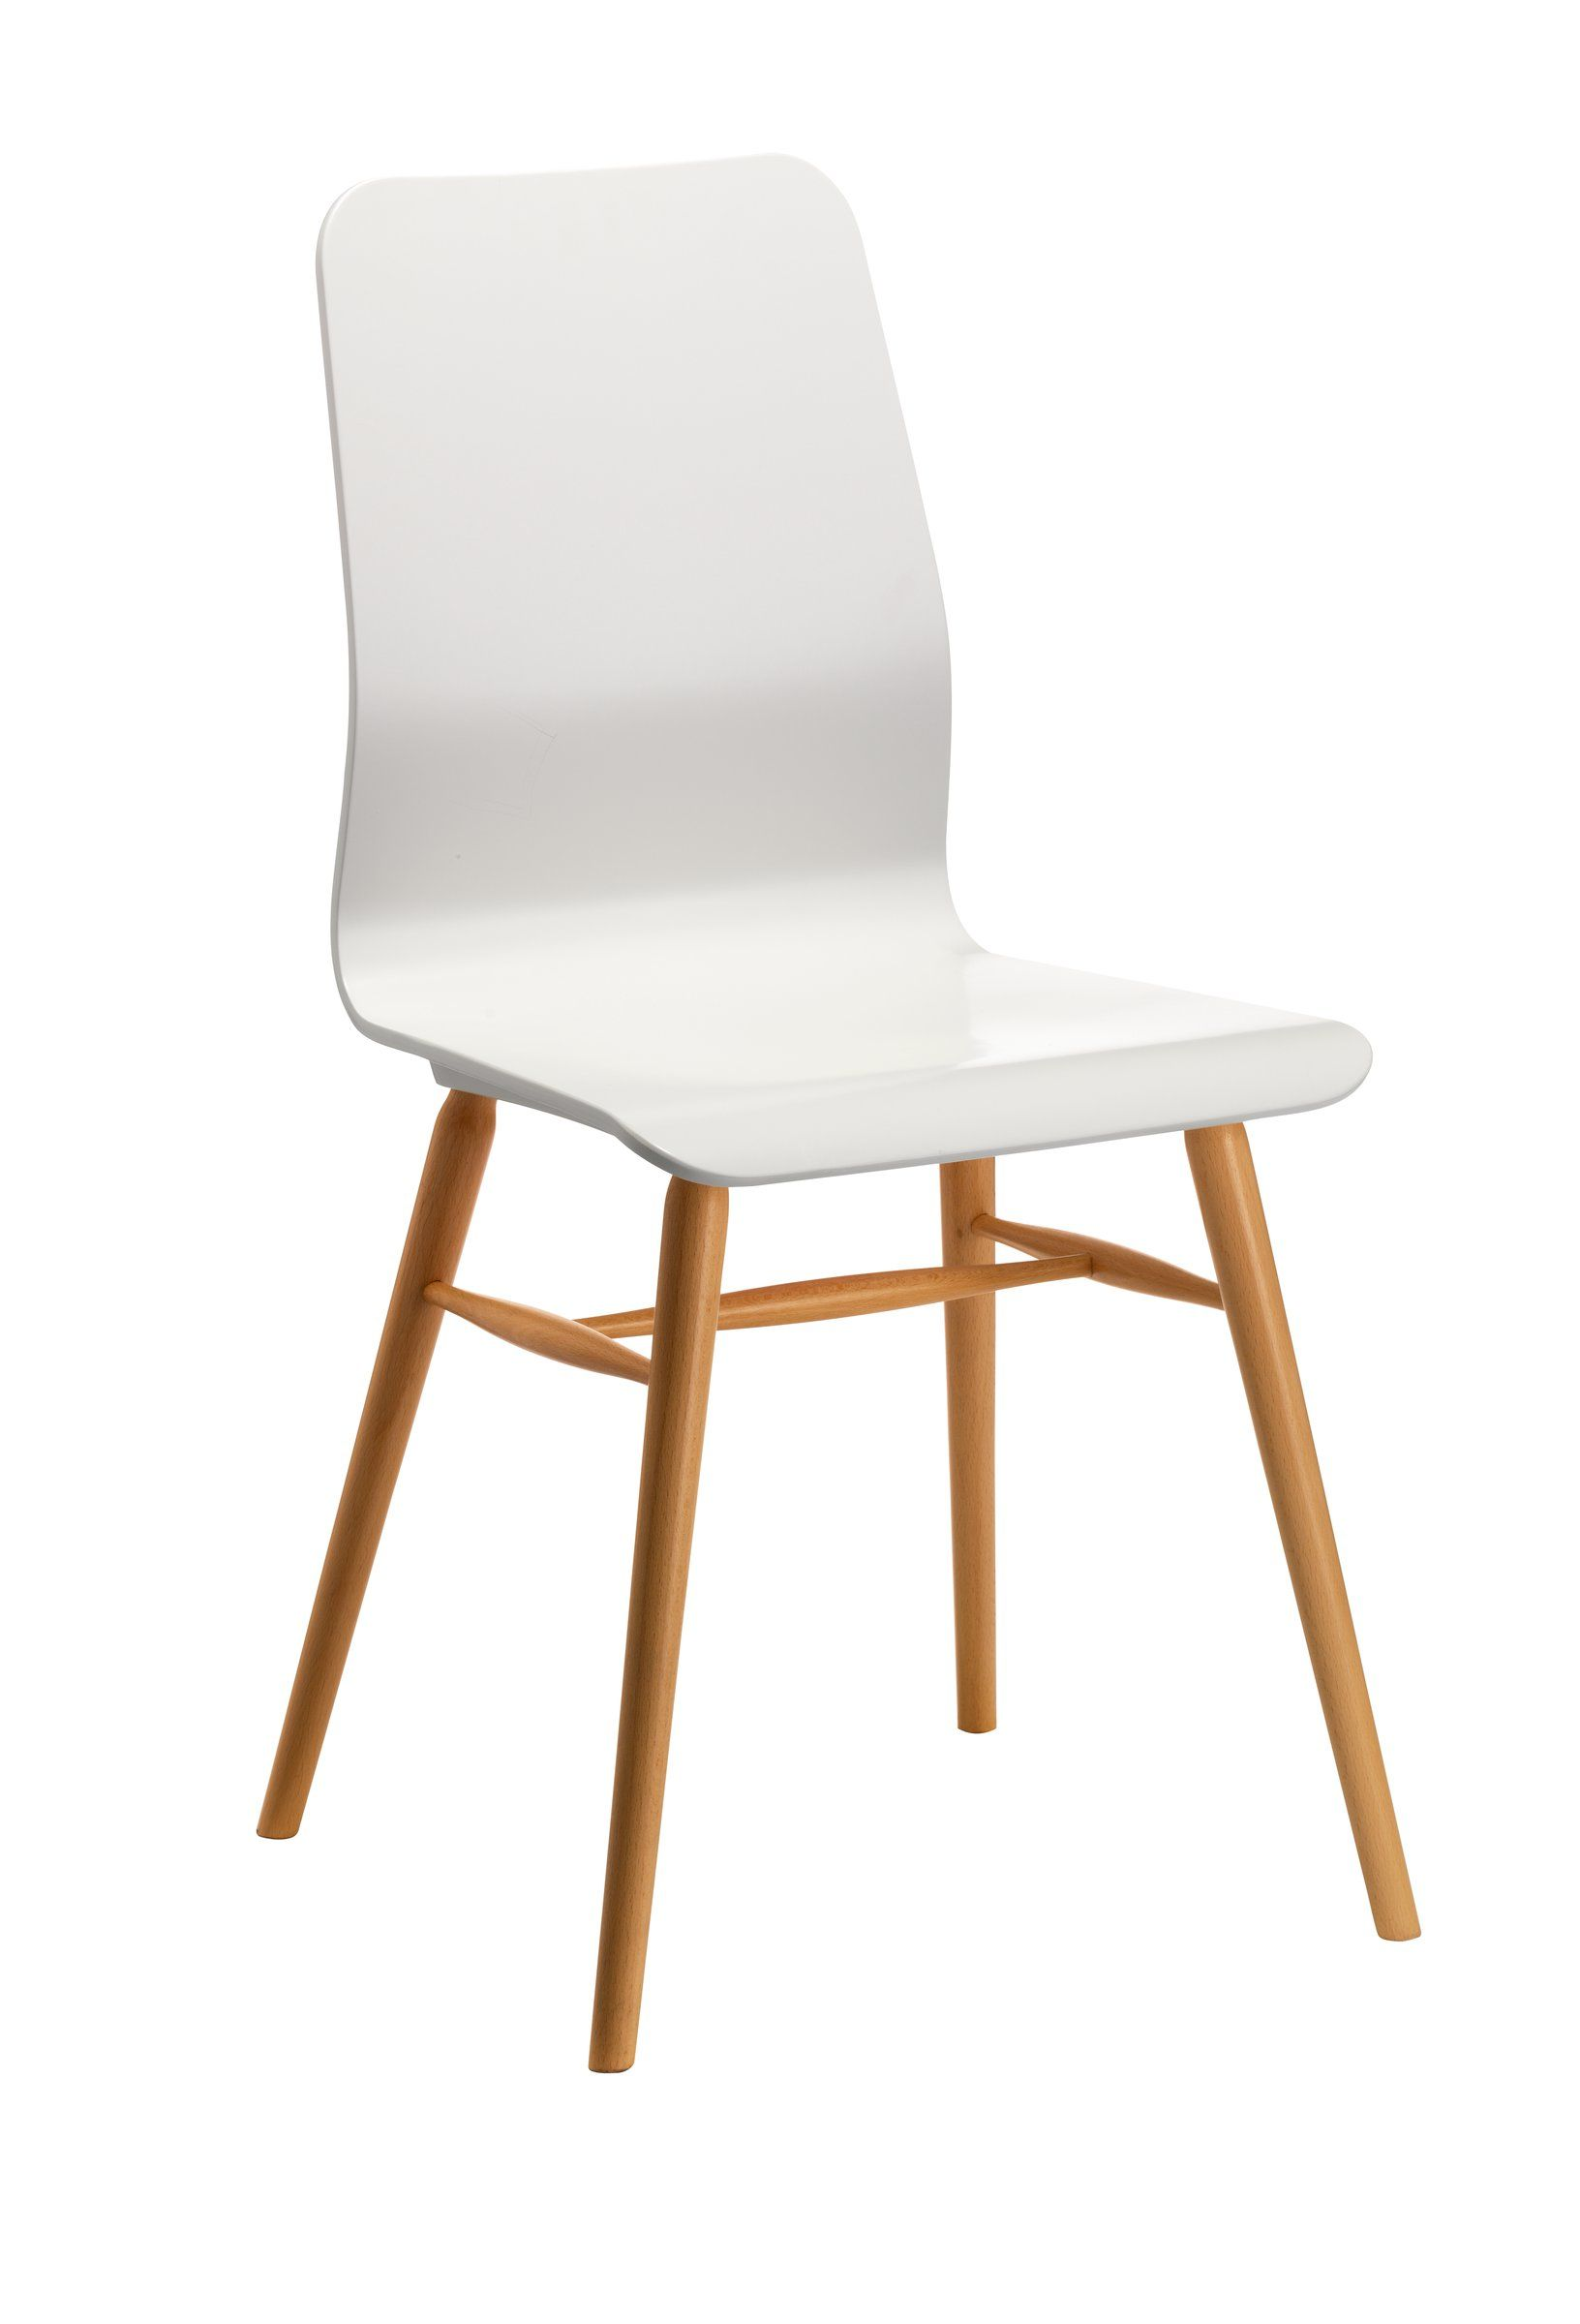 1000+ images about Stühle on Pinterest | Essen, Chairs and Eames